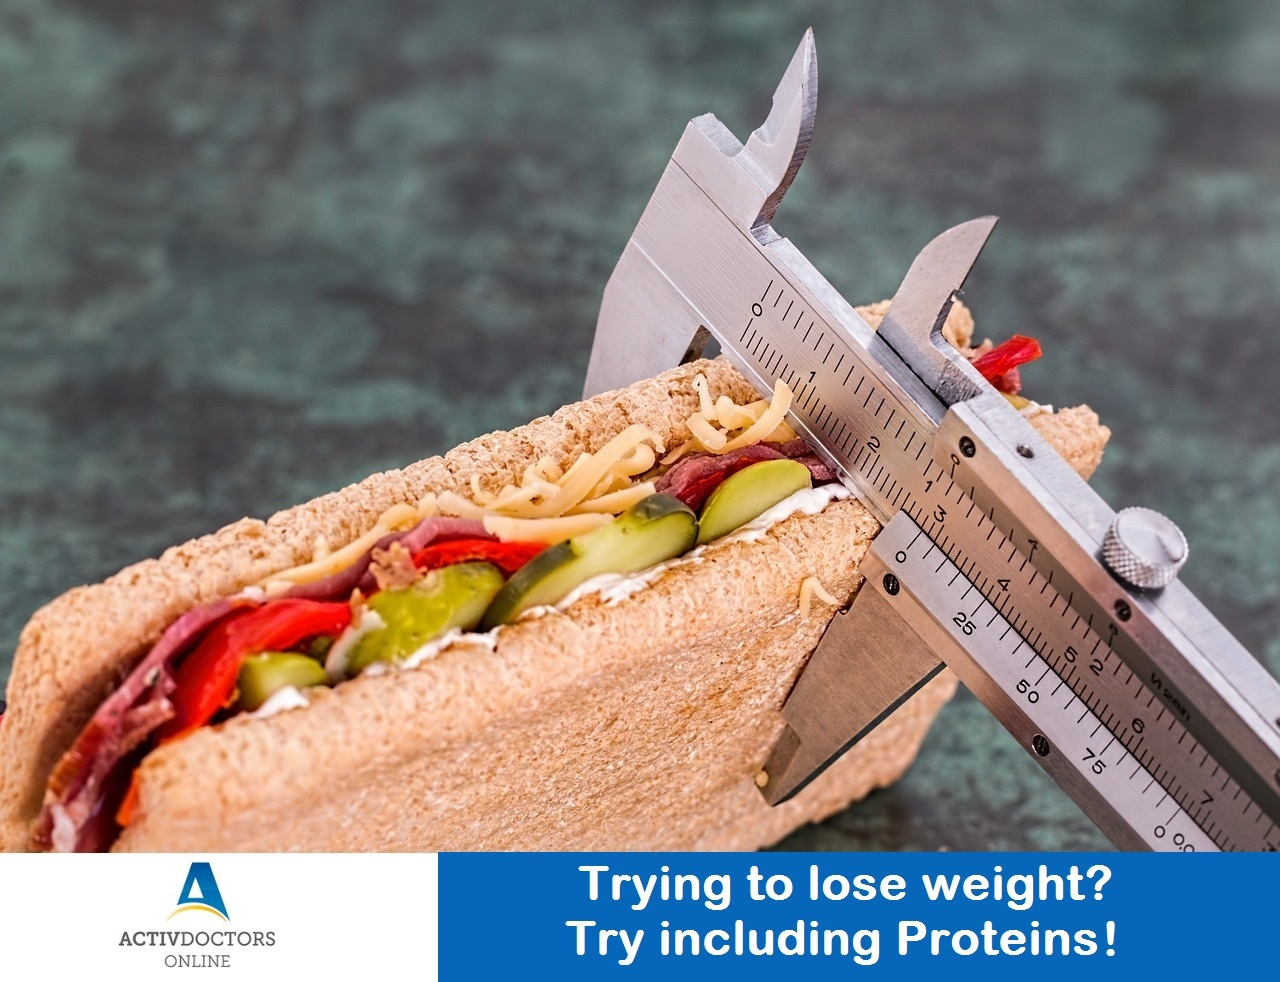 Trying to lose weight? Try including Proteins!